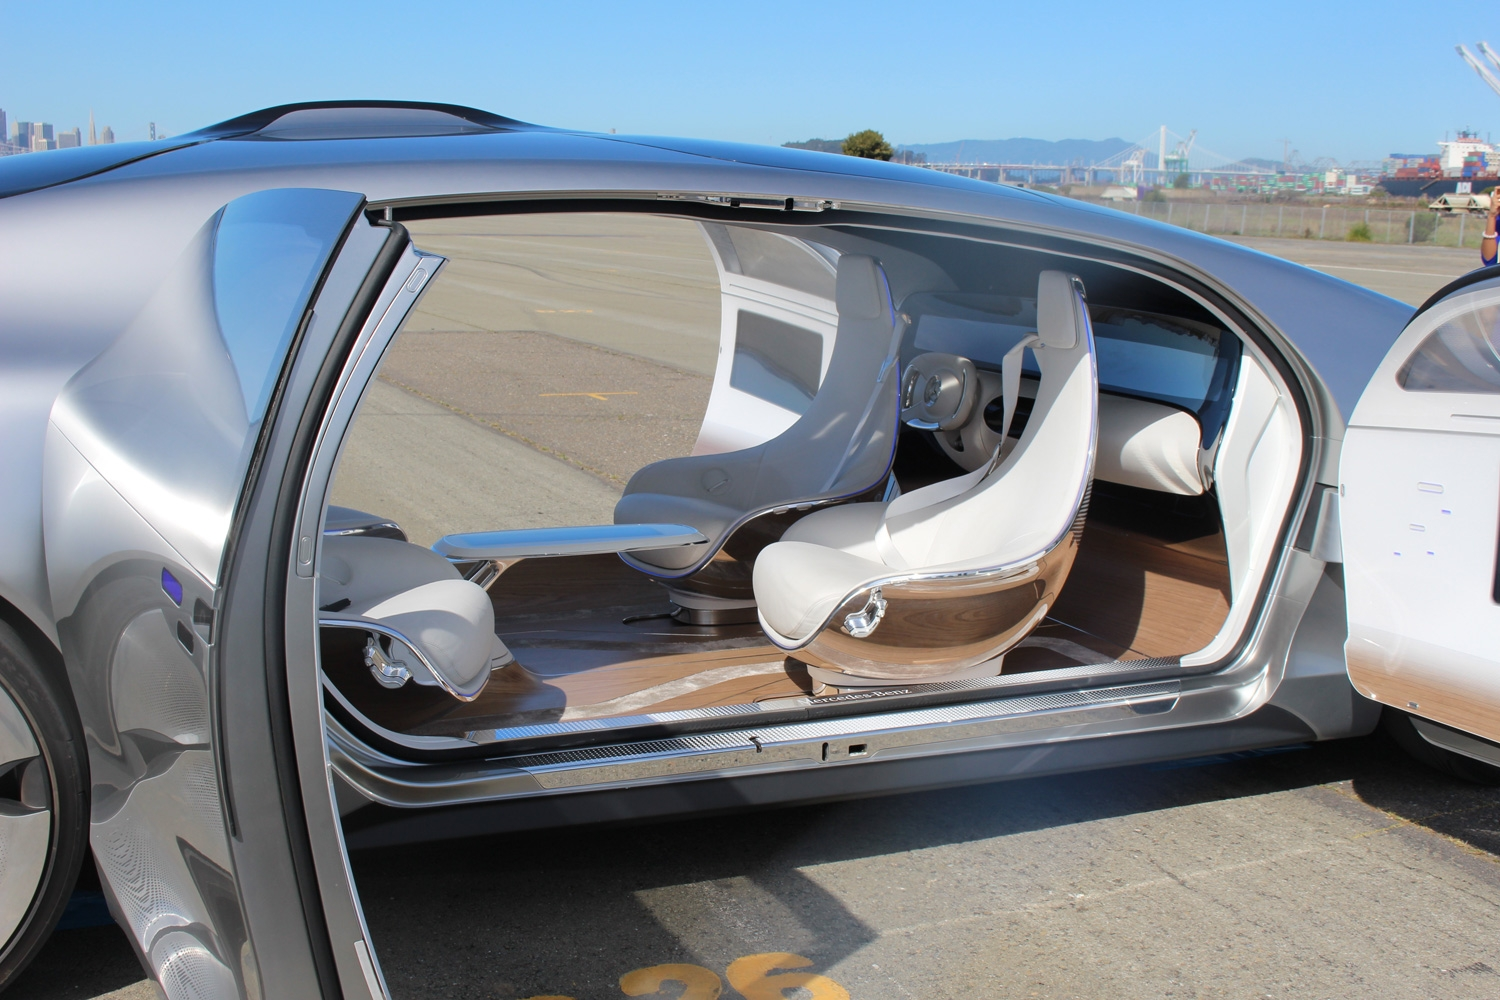 riding in the mercedes benz f 015 concept car the self driving lounge of the future digital arts. Black Bedroom Furniture Sets. Home Design Ideas